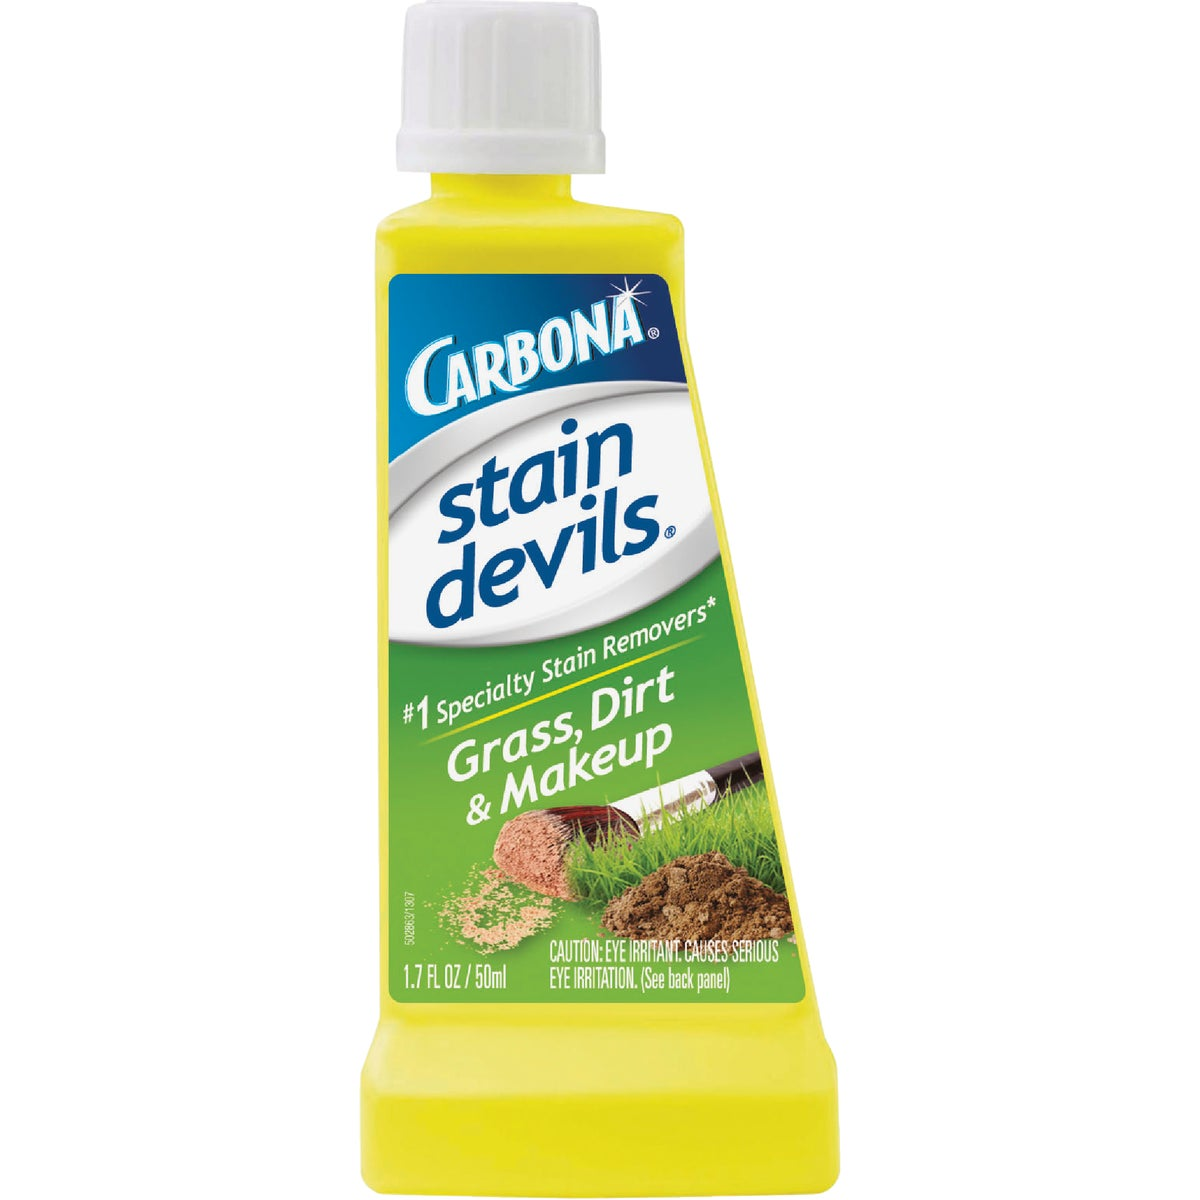 STAIN DEVILS #6 REMOVER